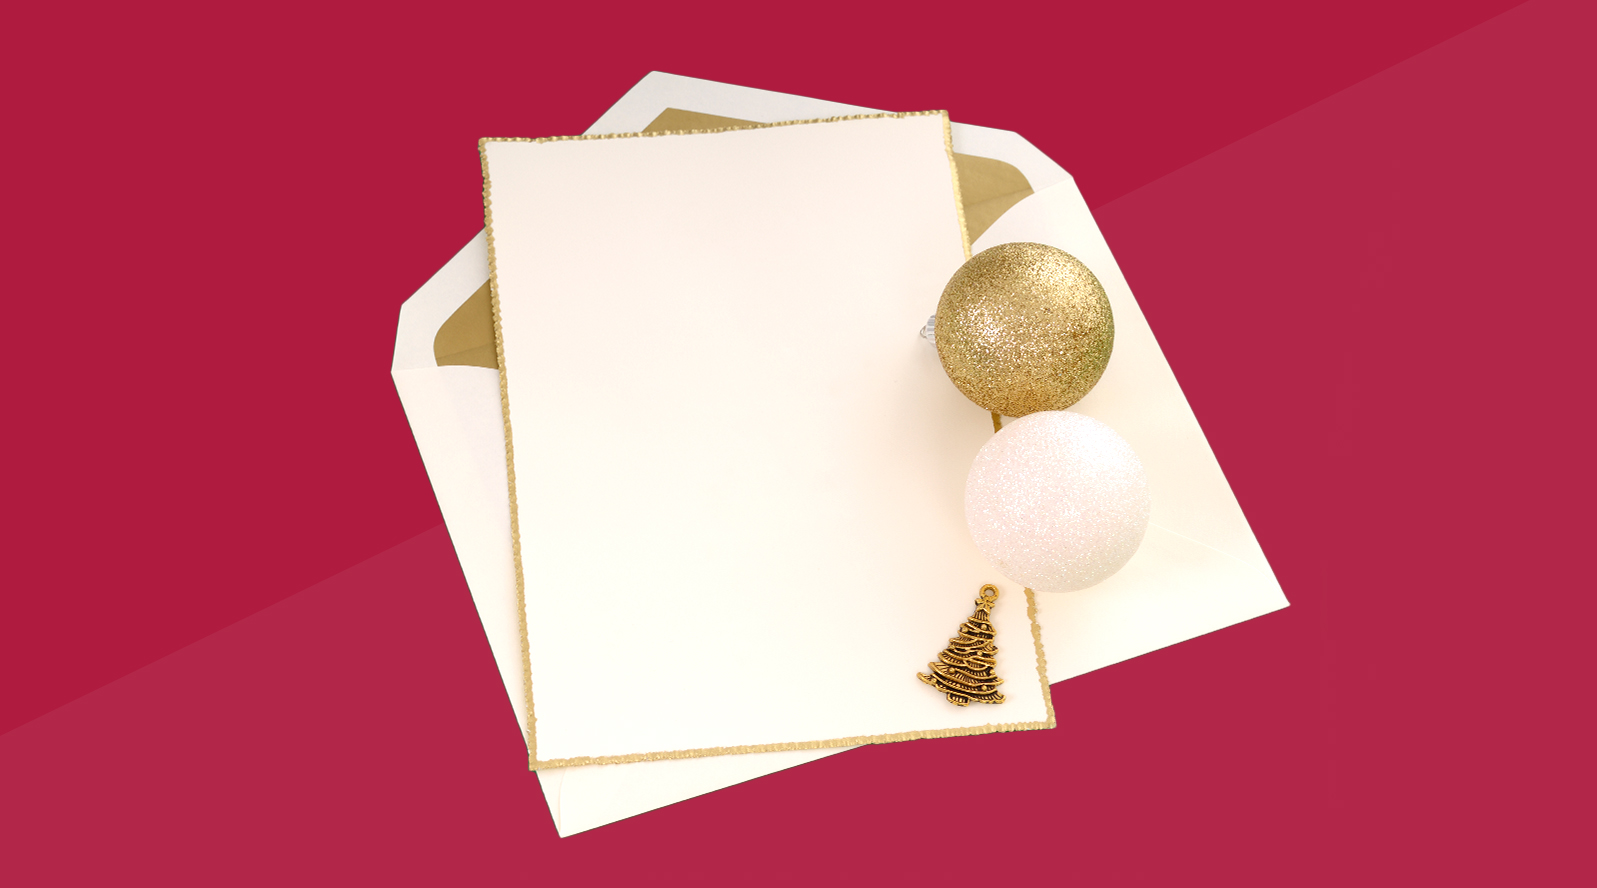 stationery on red background